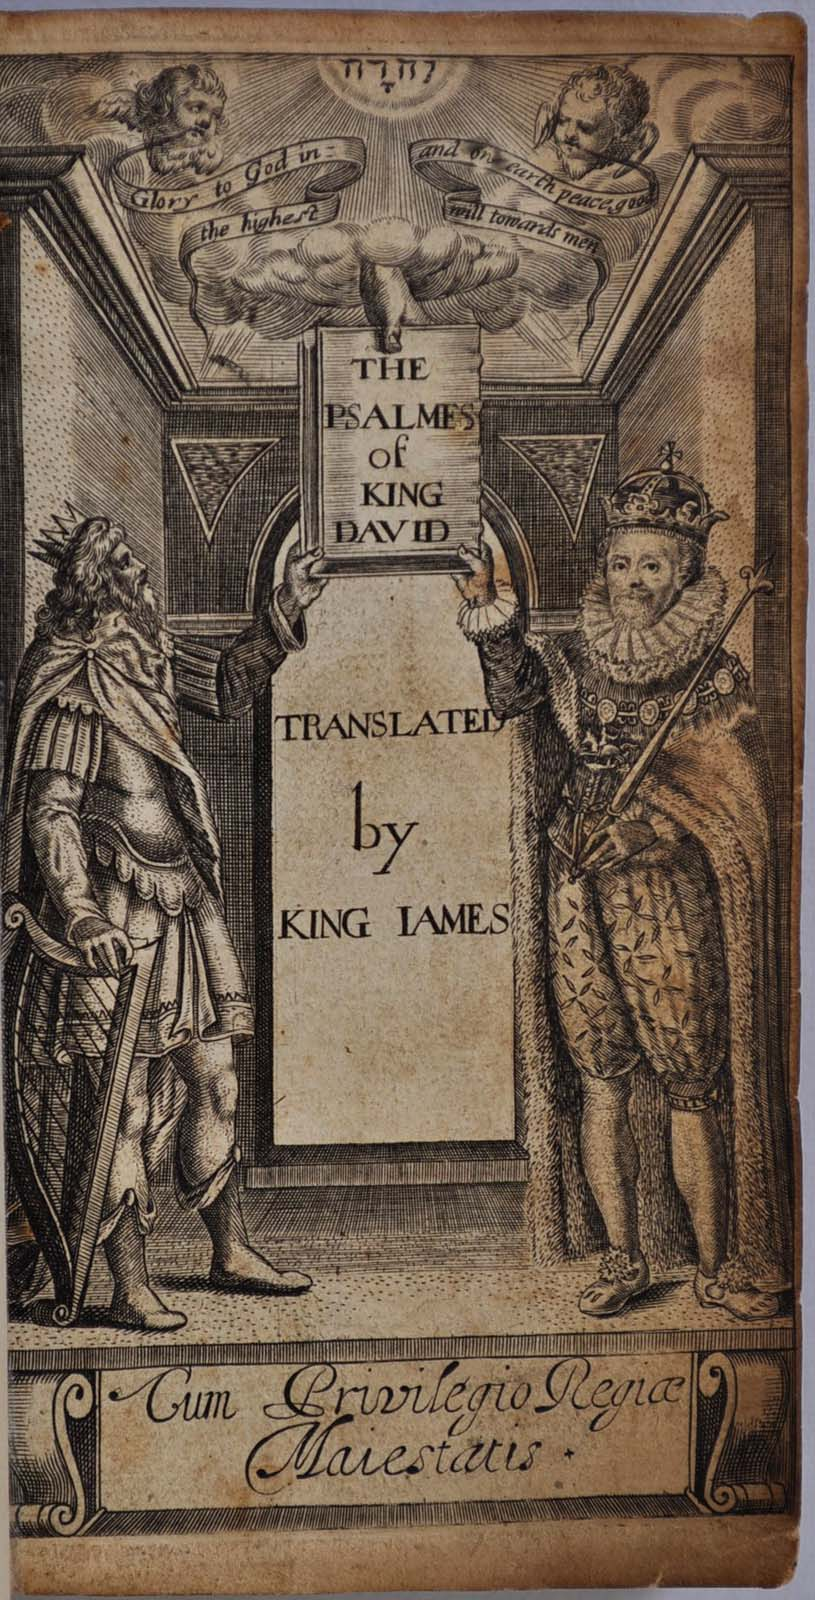 THE PSALMES OF KING DAVID, TRANSLATED BY KING JAMES by Bible  Psalms on  Kurt Gippert Bookseller